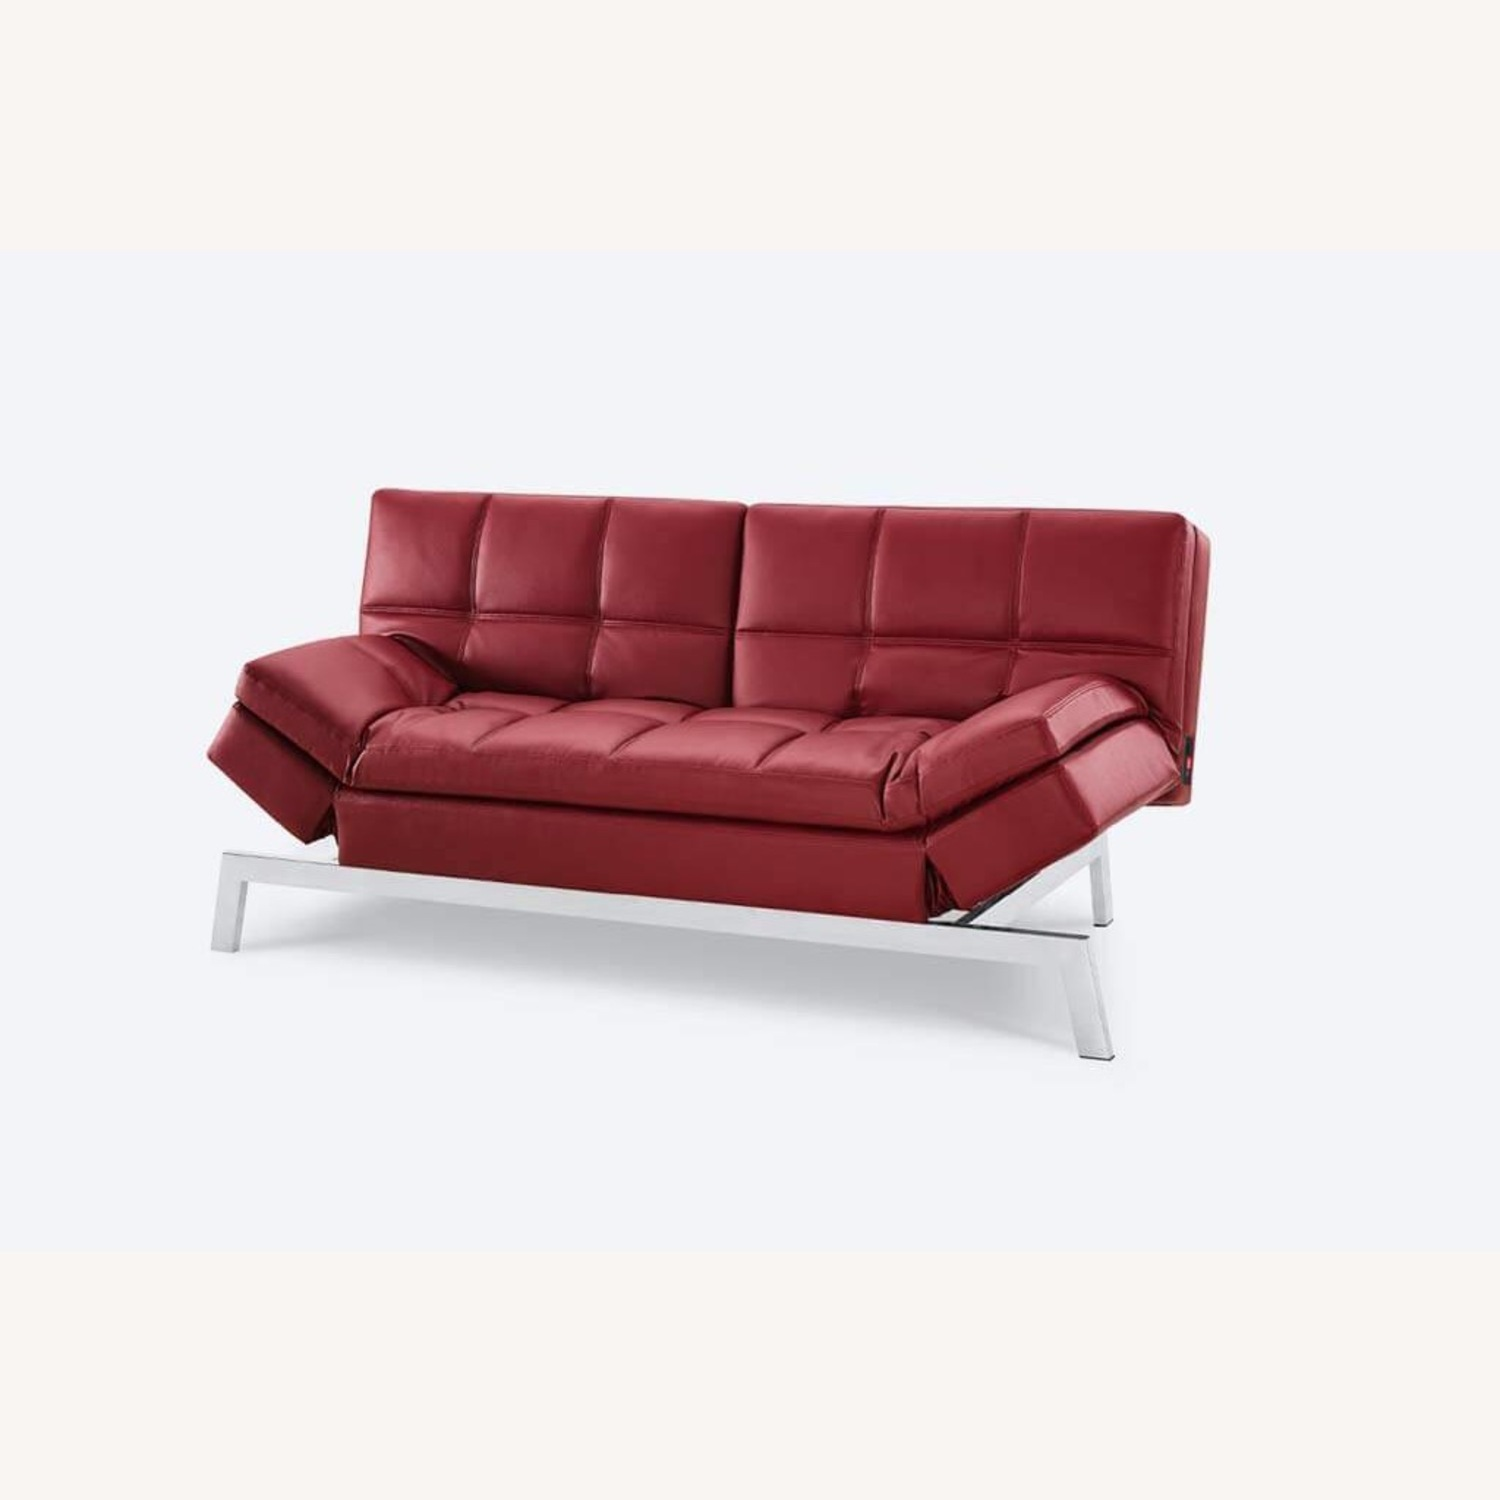 Coddle Red Leather Convertible Couch - image-5